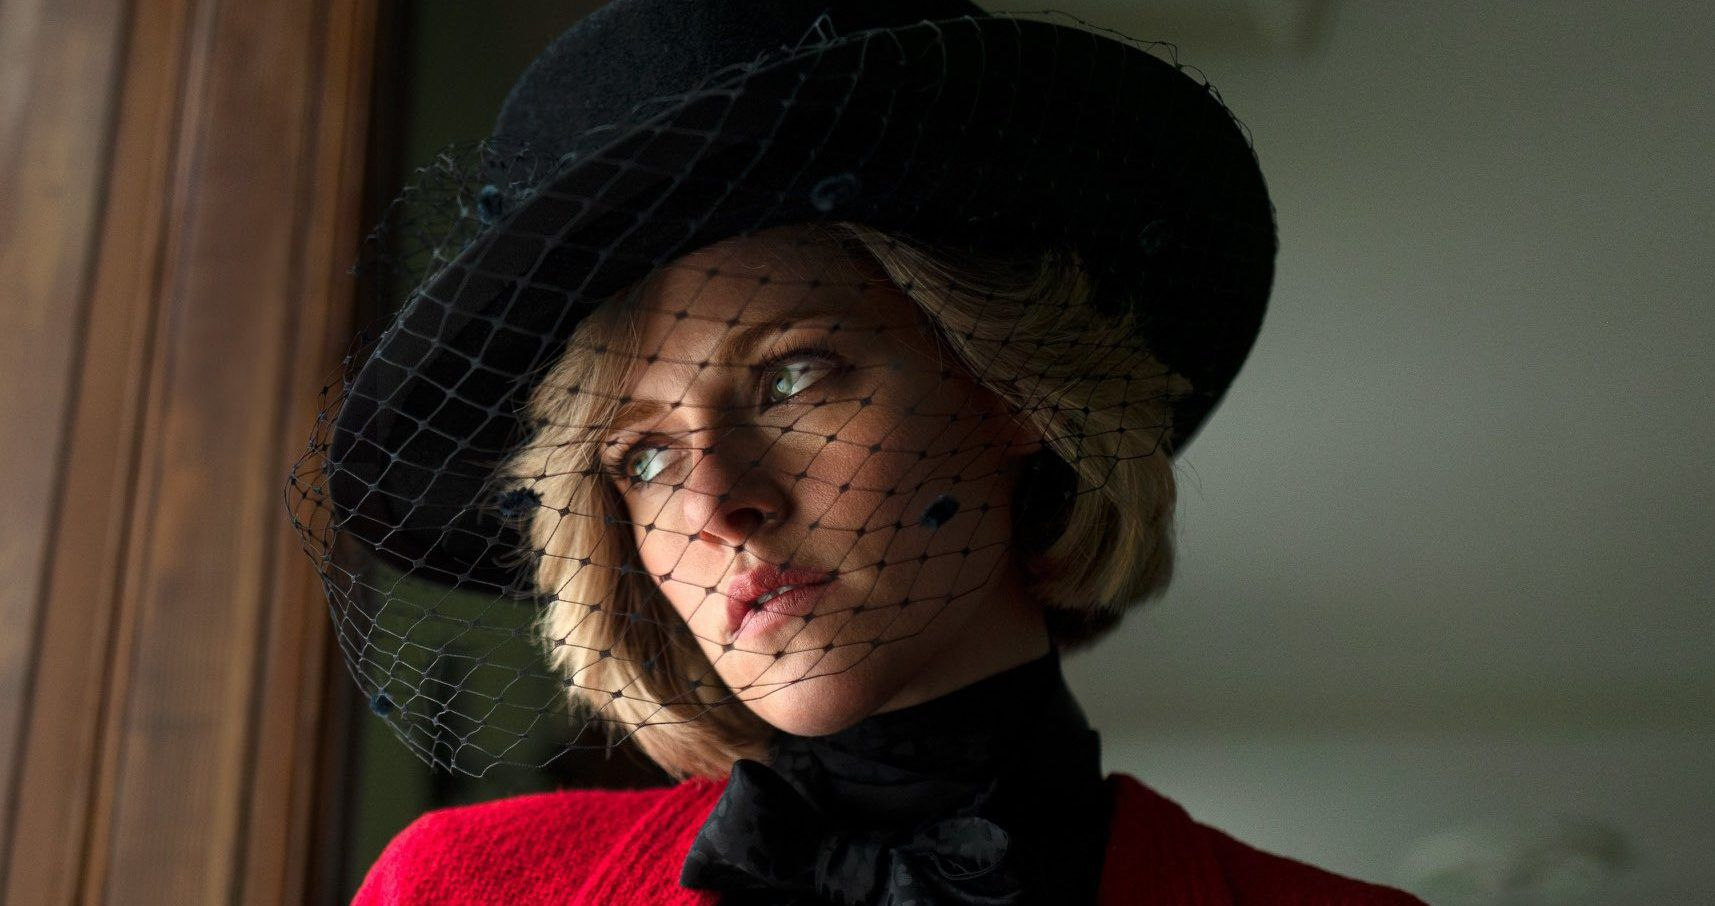 Fans Can't Get Over How Much Kristen Stewart Looks Like Princess Diana In New 'Spencer' Promos